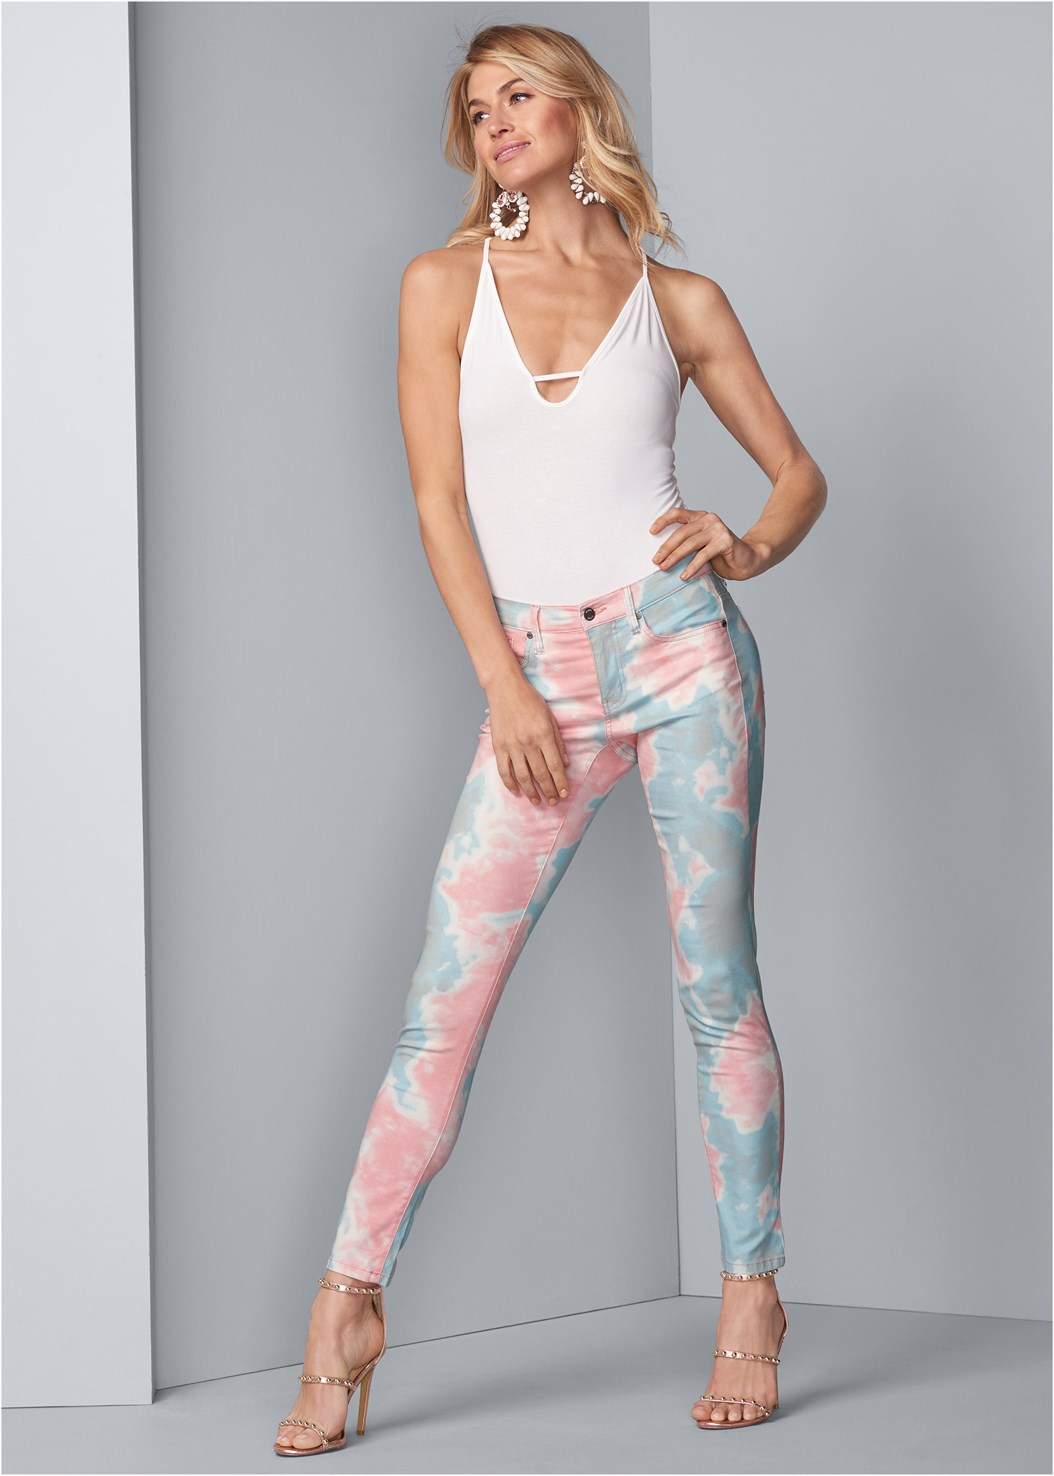 Tie Dye Skinny Jeans,Lift It Up Backless And Strapless Plunge,Studded Strappy Heels,Embellished Lucite Heel,Extreme Flare Jeans